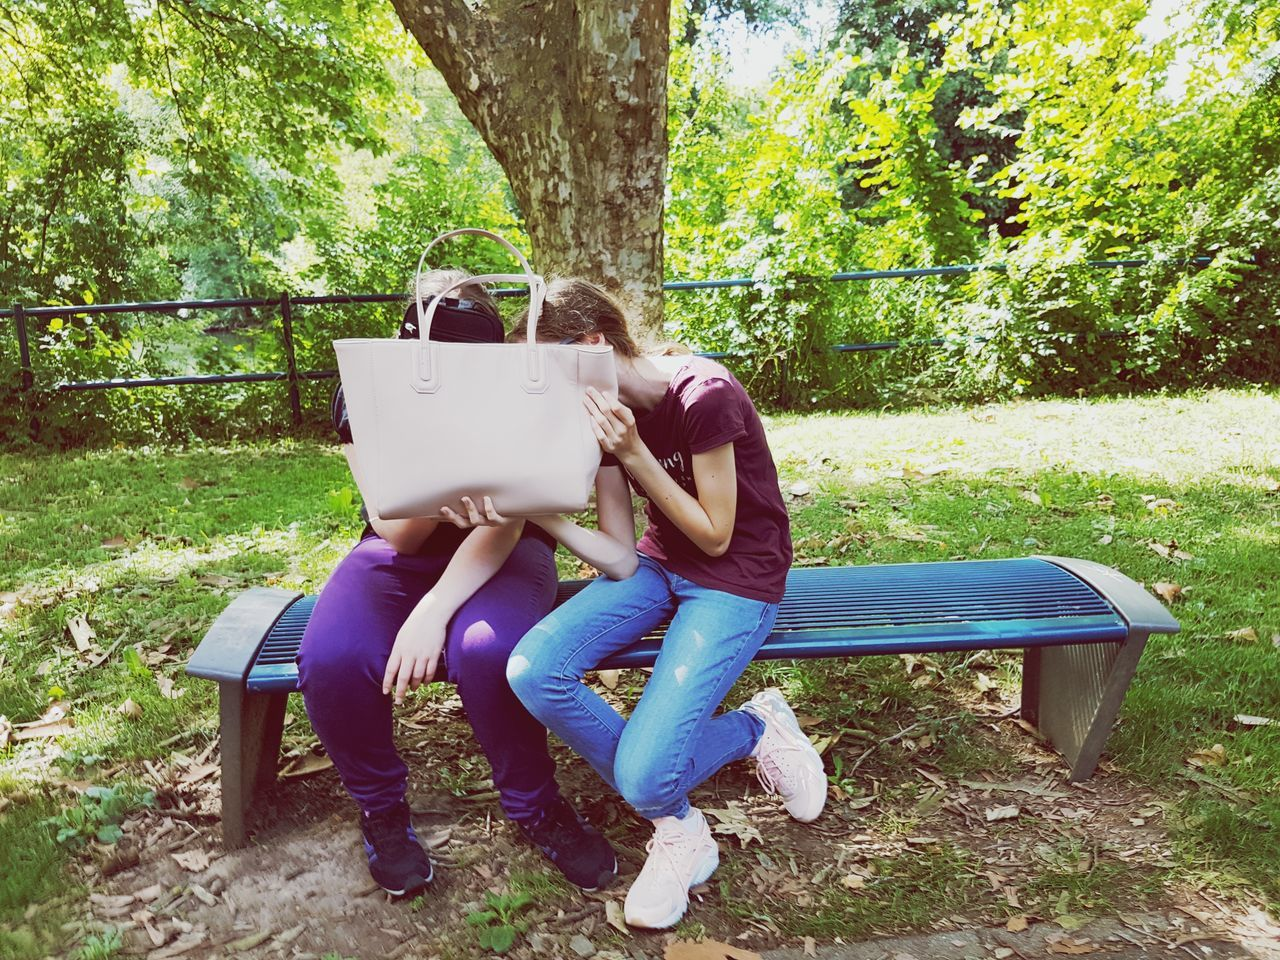 casual clothing, sitting, full length, tree, day, two people, togetherness, holding, real people, leisure activity, grass, outdoors, tree trunk, young women, cardboard box, nature, young adult, people